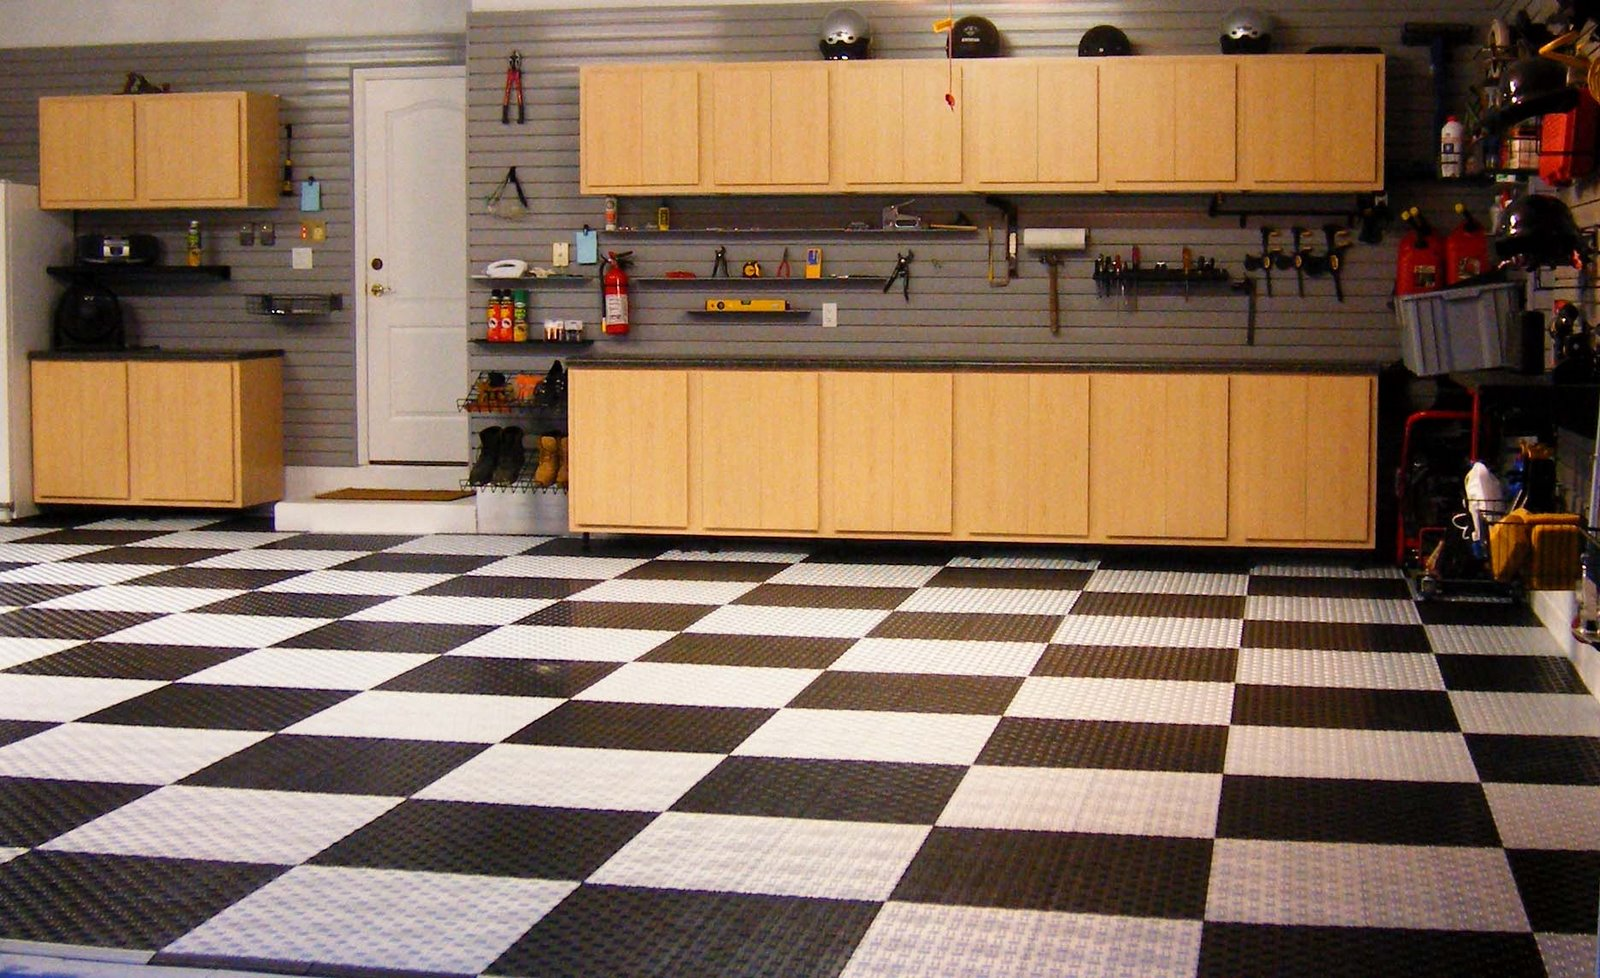 Michael blanchard handyman services Two floor garage